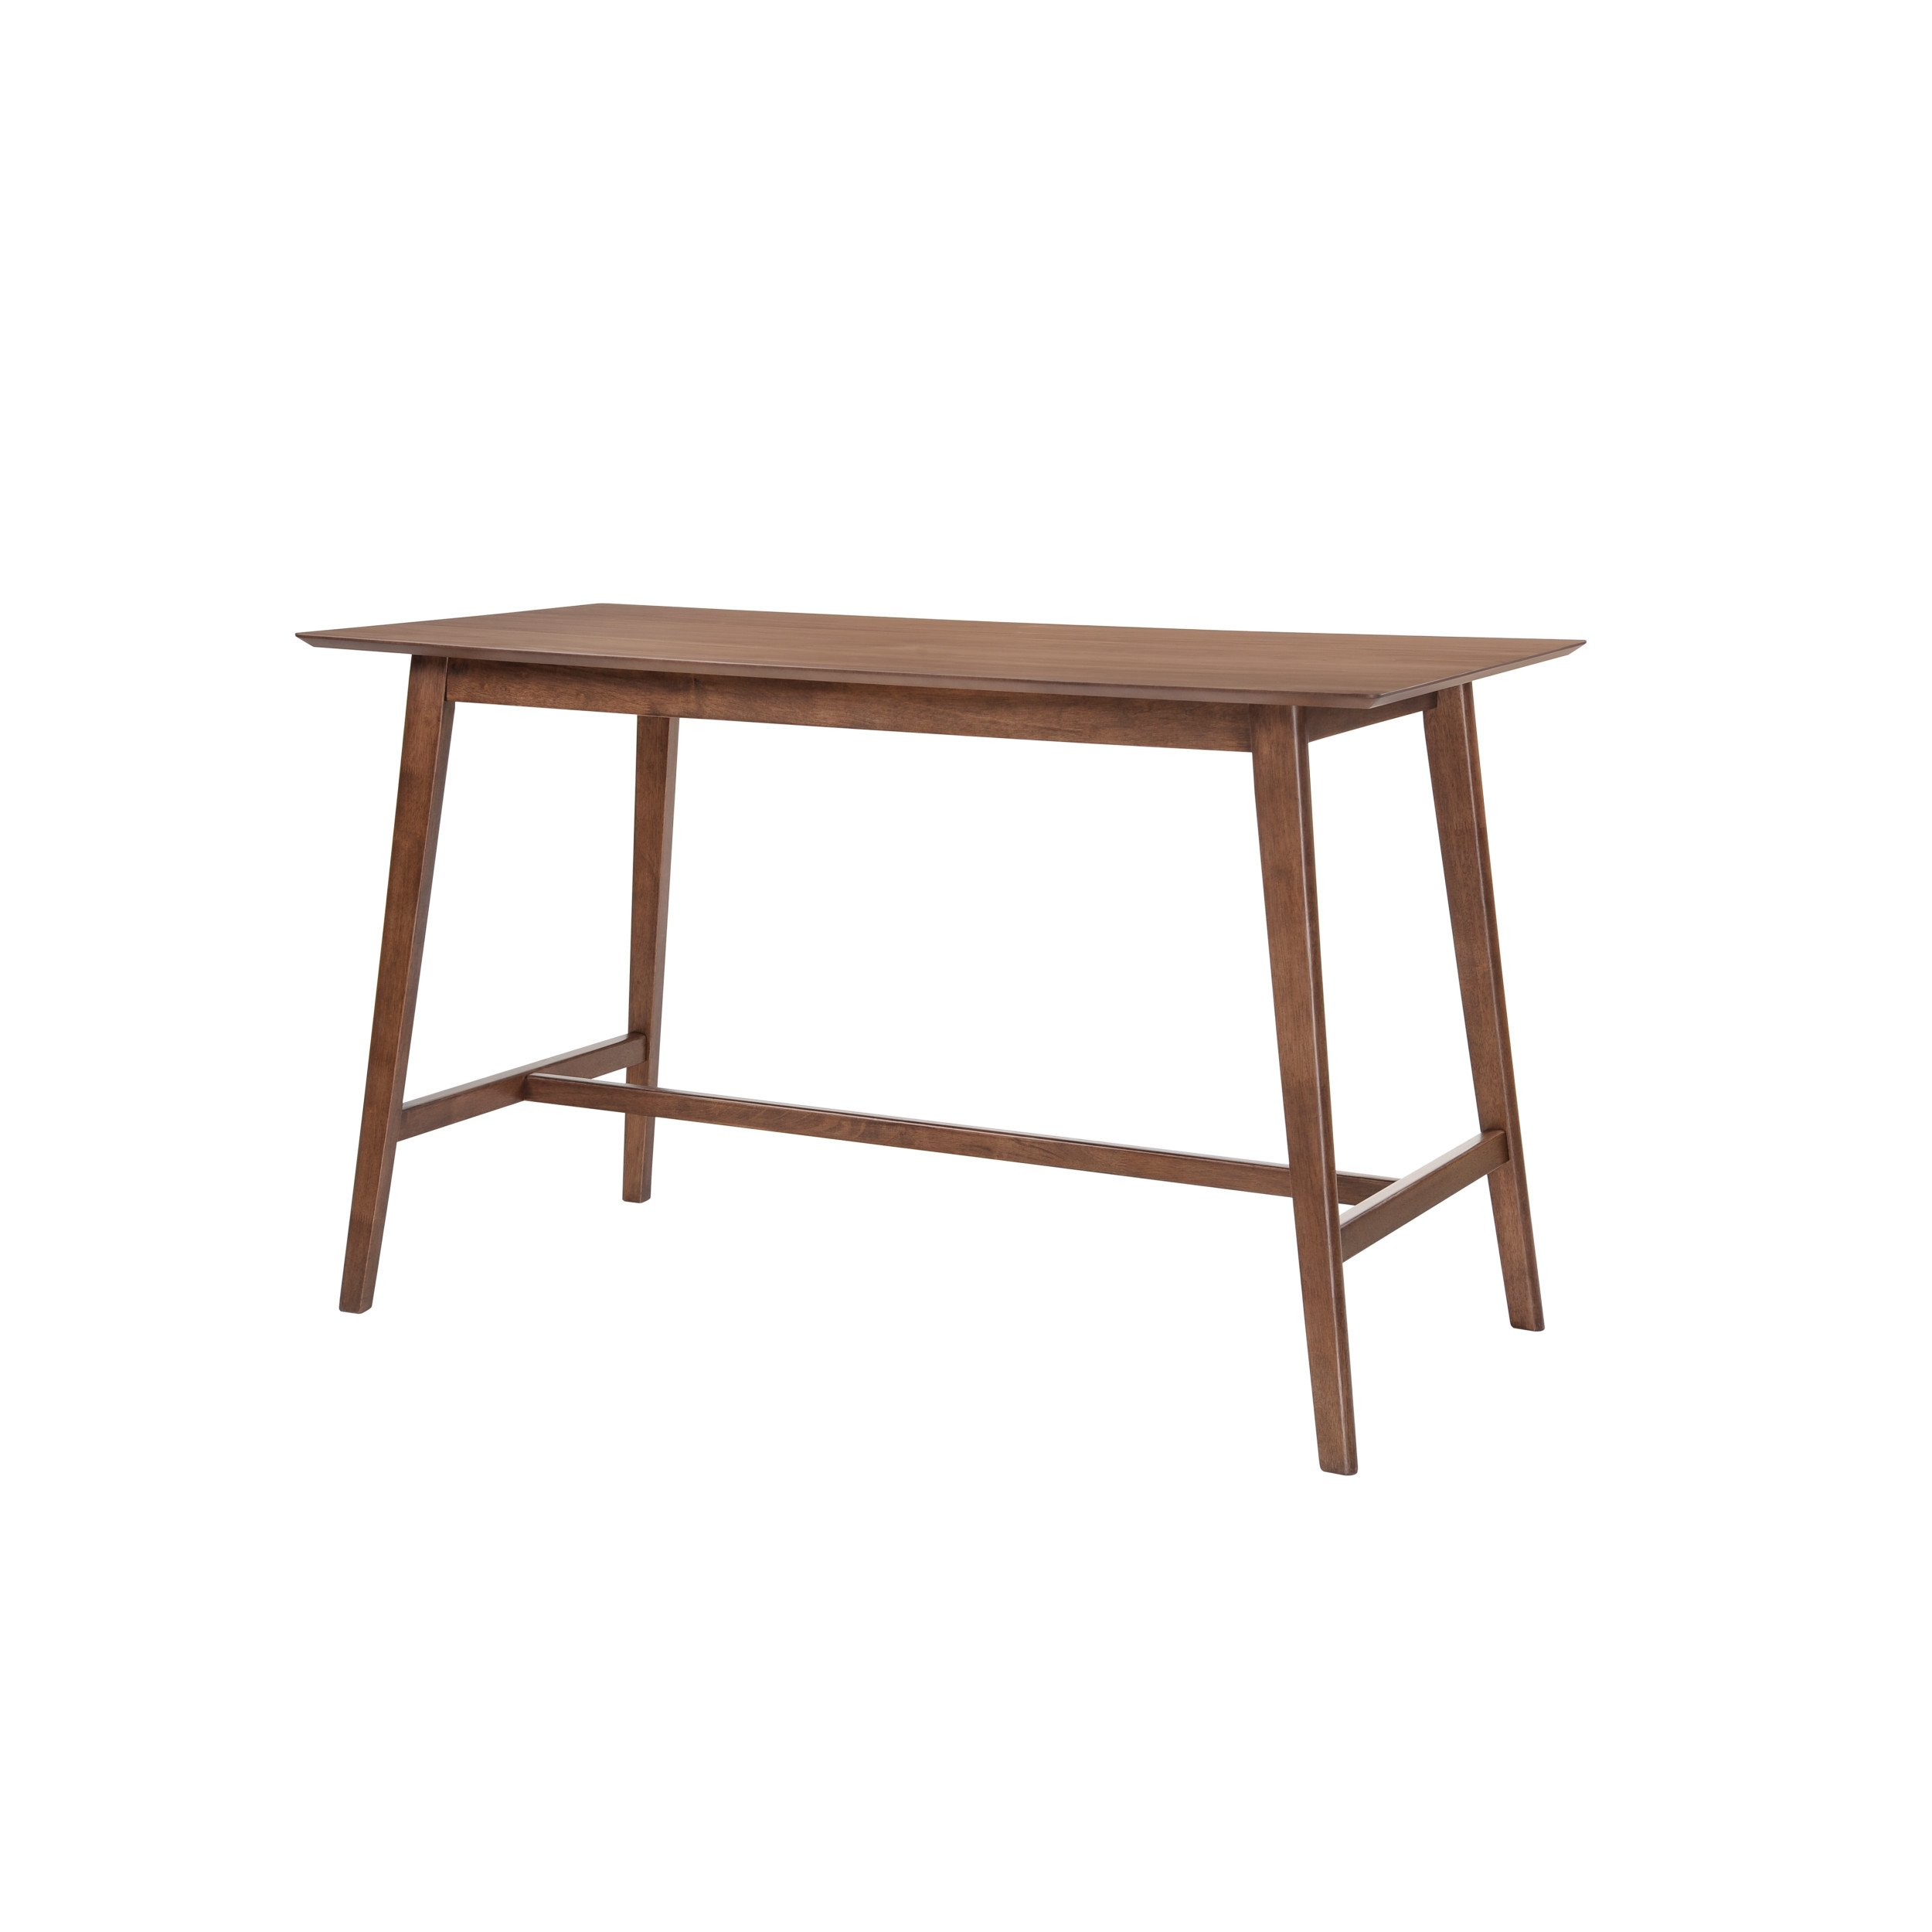 Emerald Home Furnishings D550-14 Simplicity Gathering Height Dining Table, Standard, Walnut Brown by Emerald Home Furnishings